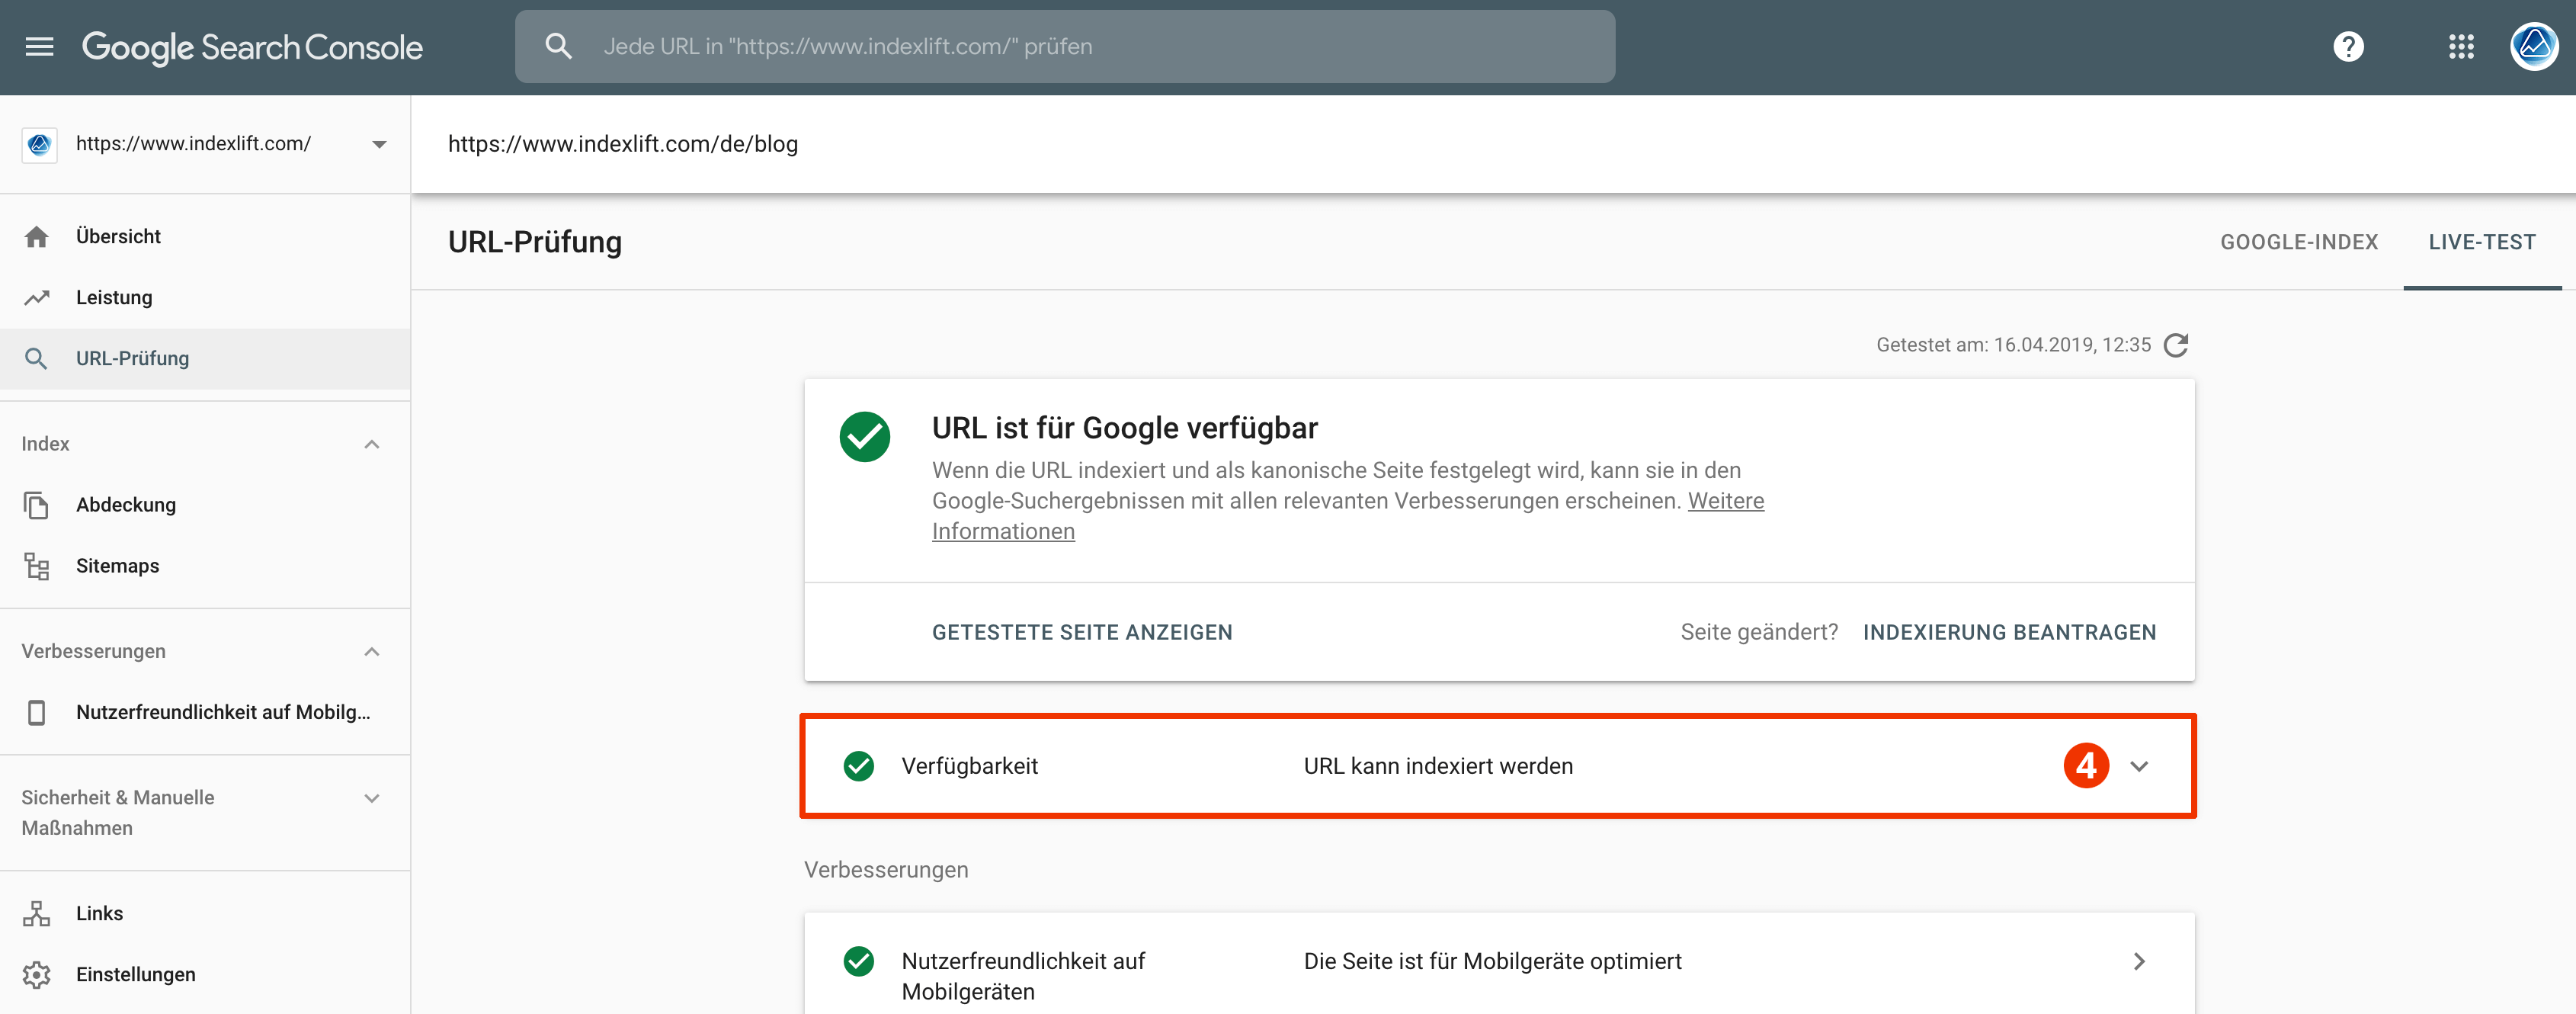 Live-URL Test mit der Google Search Console